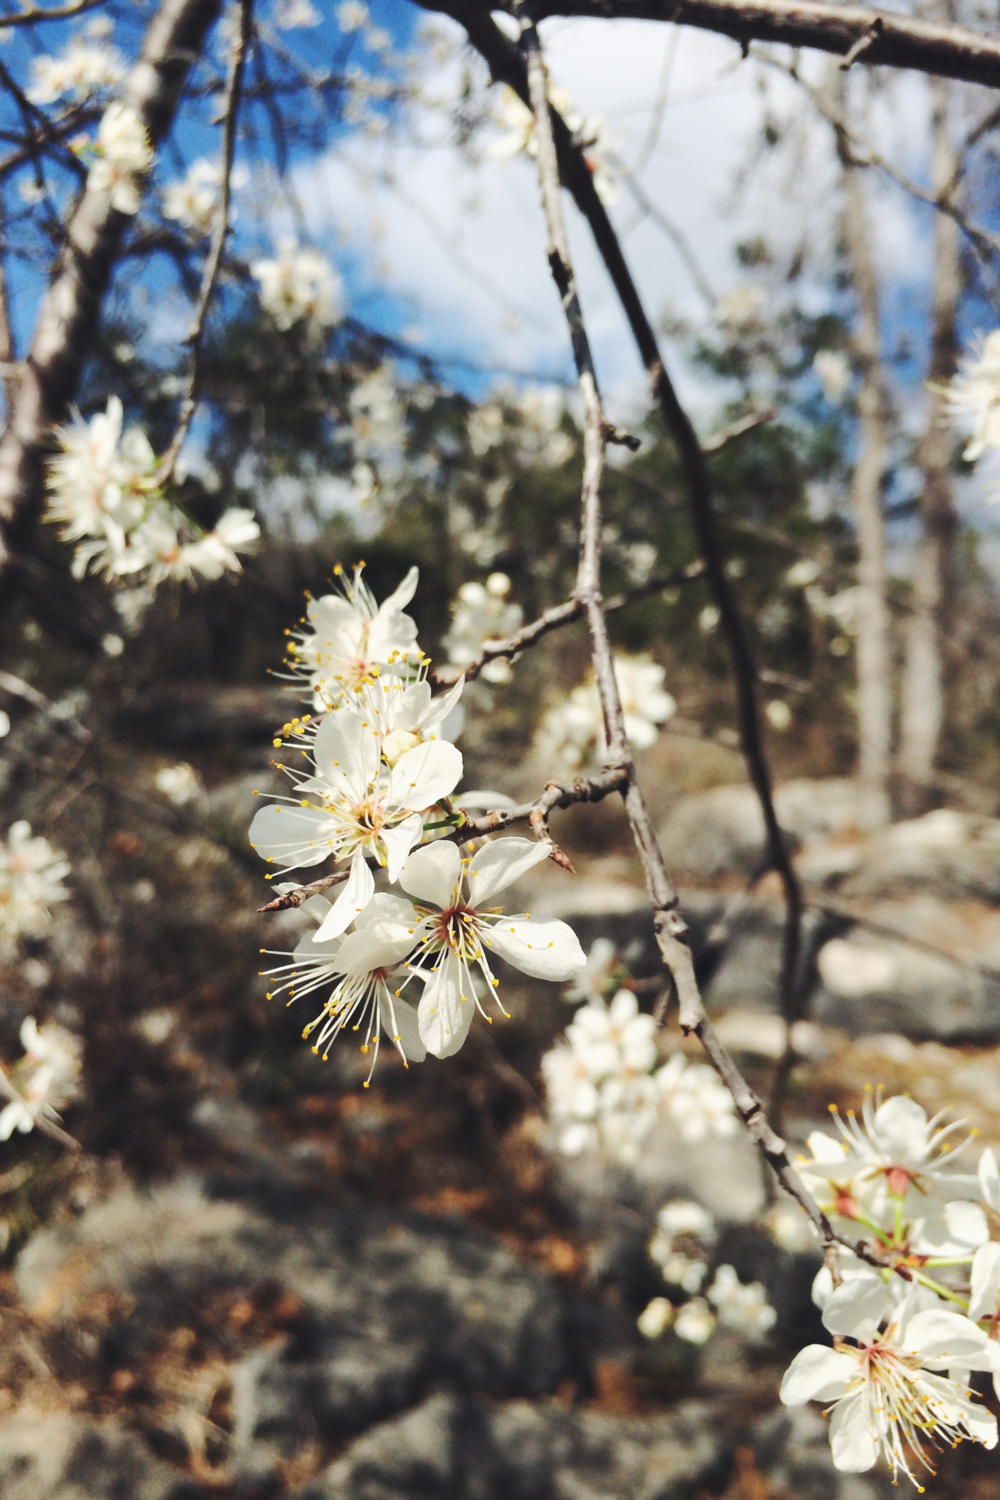 Blossoms. Photo via Dalena Vintage.